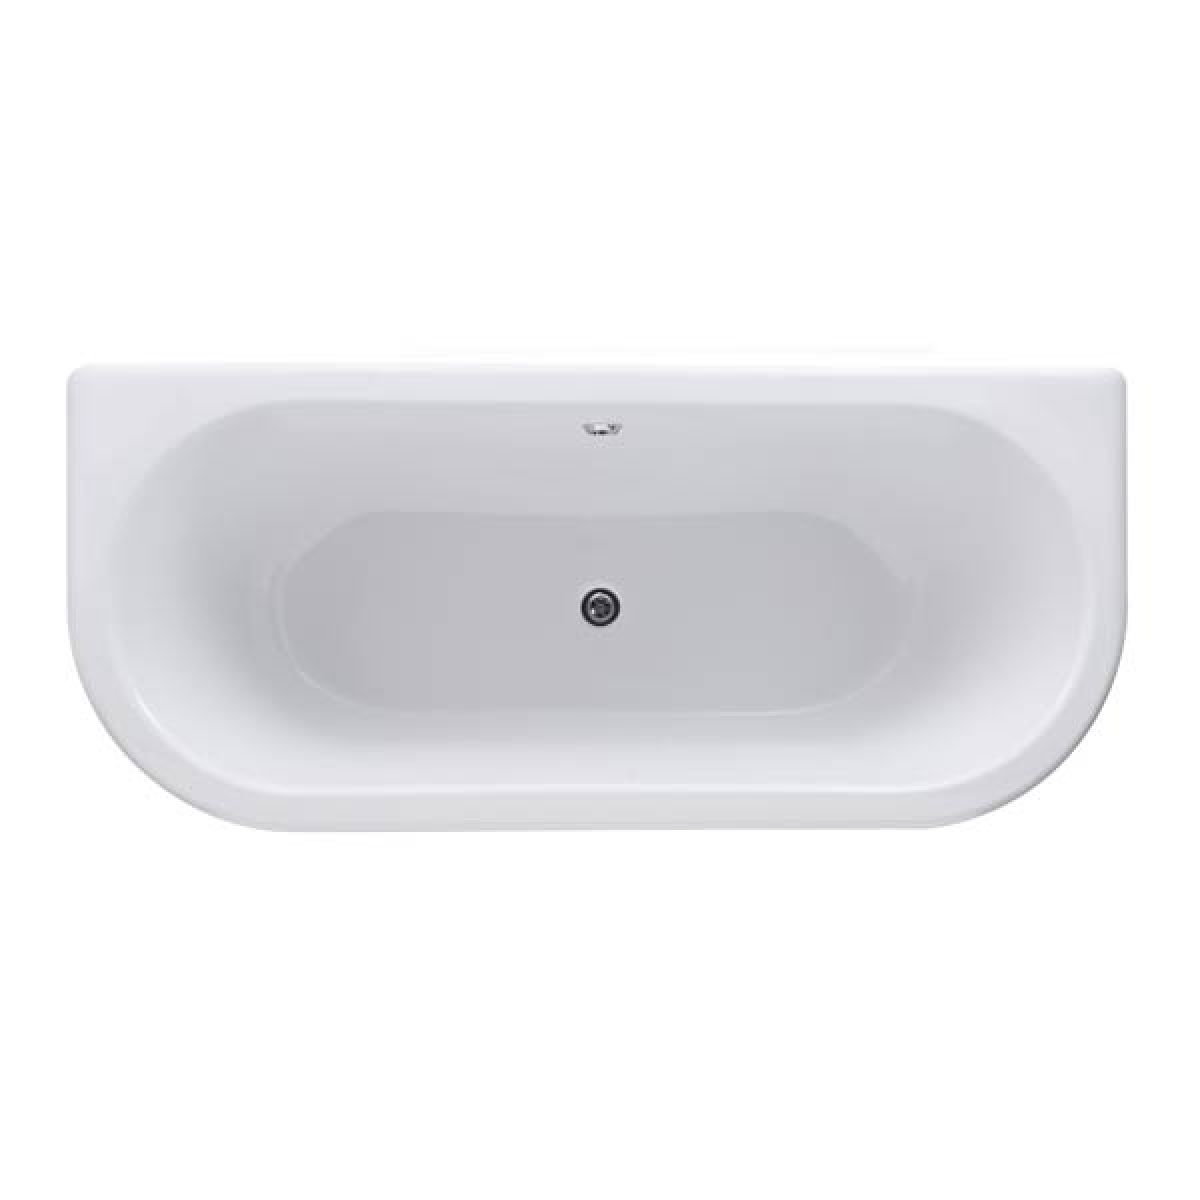 Premier Back to Wall Freestanding Bath Top